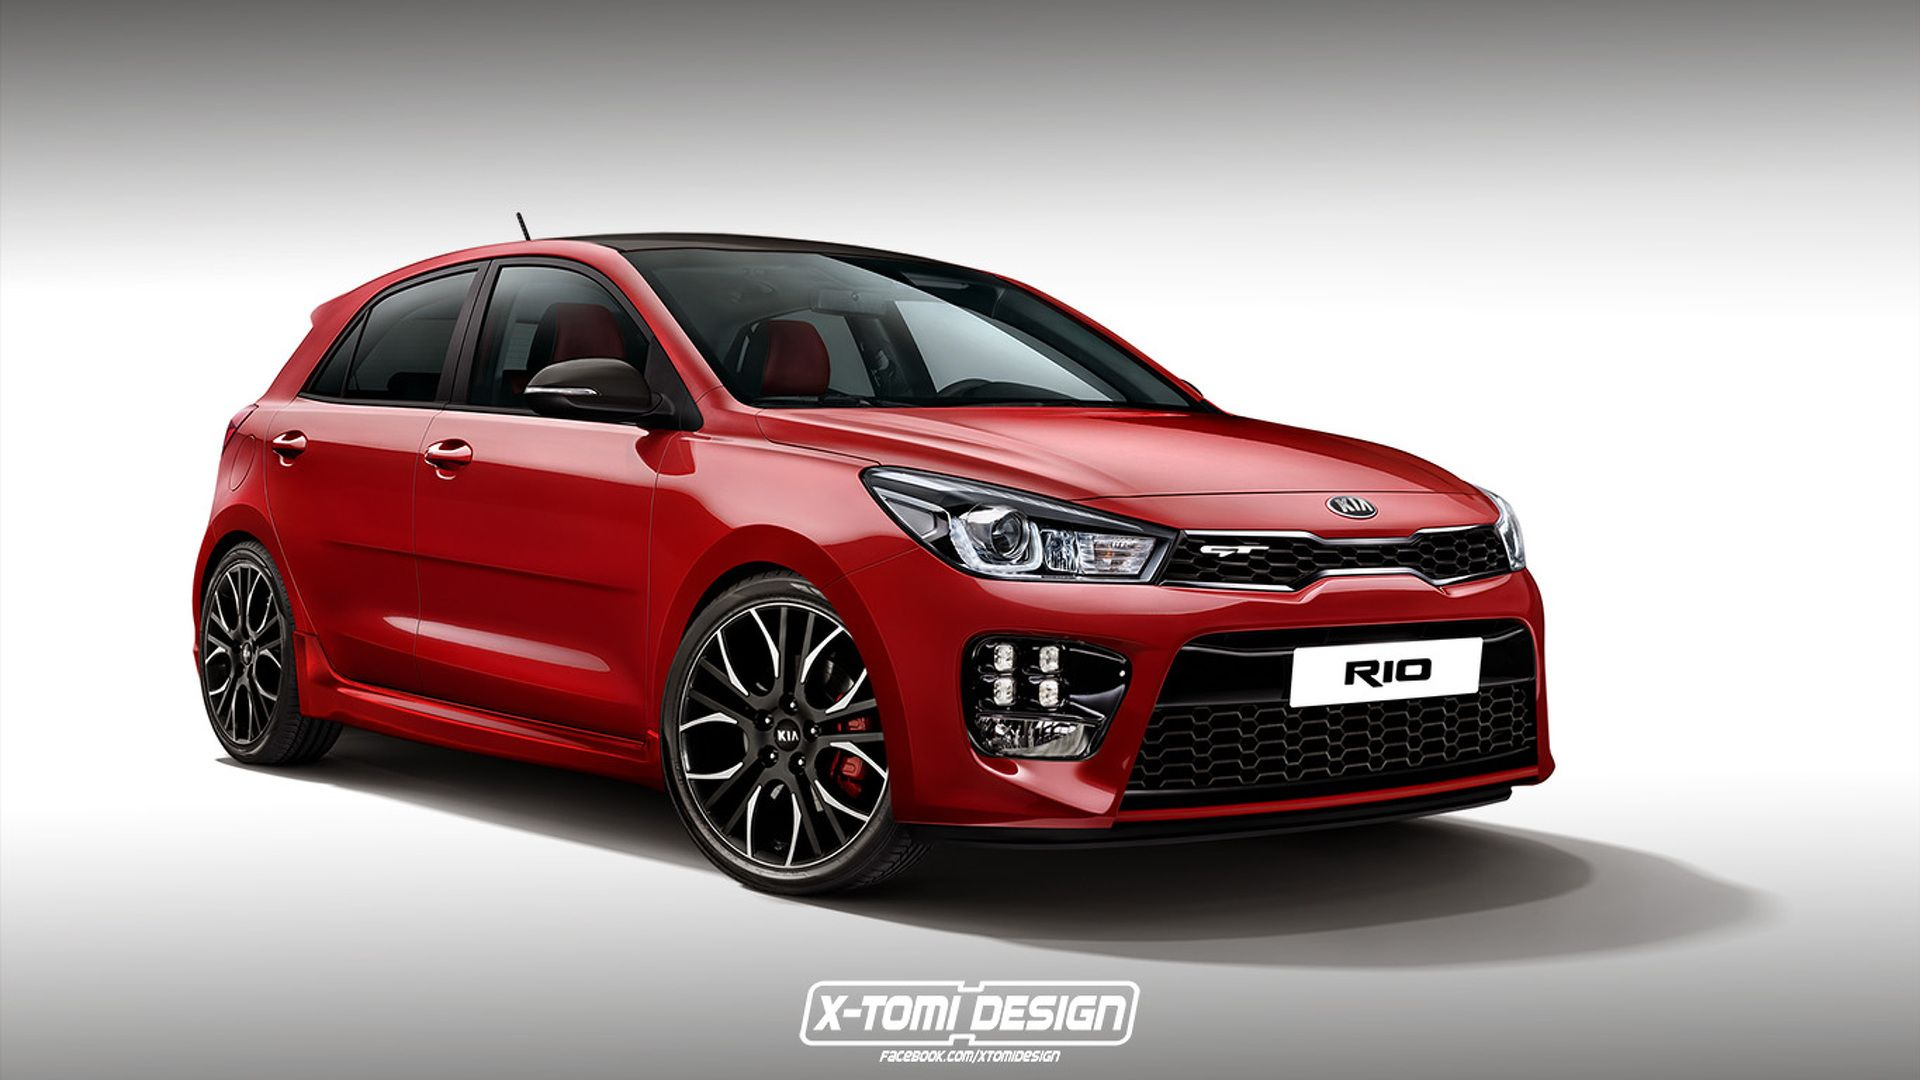 2018 Kia Rio GT. Not sure whether or not this will make